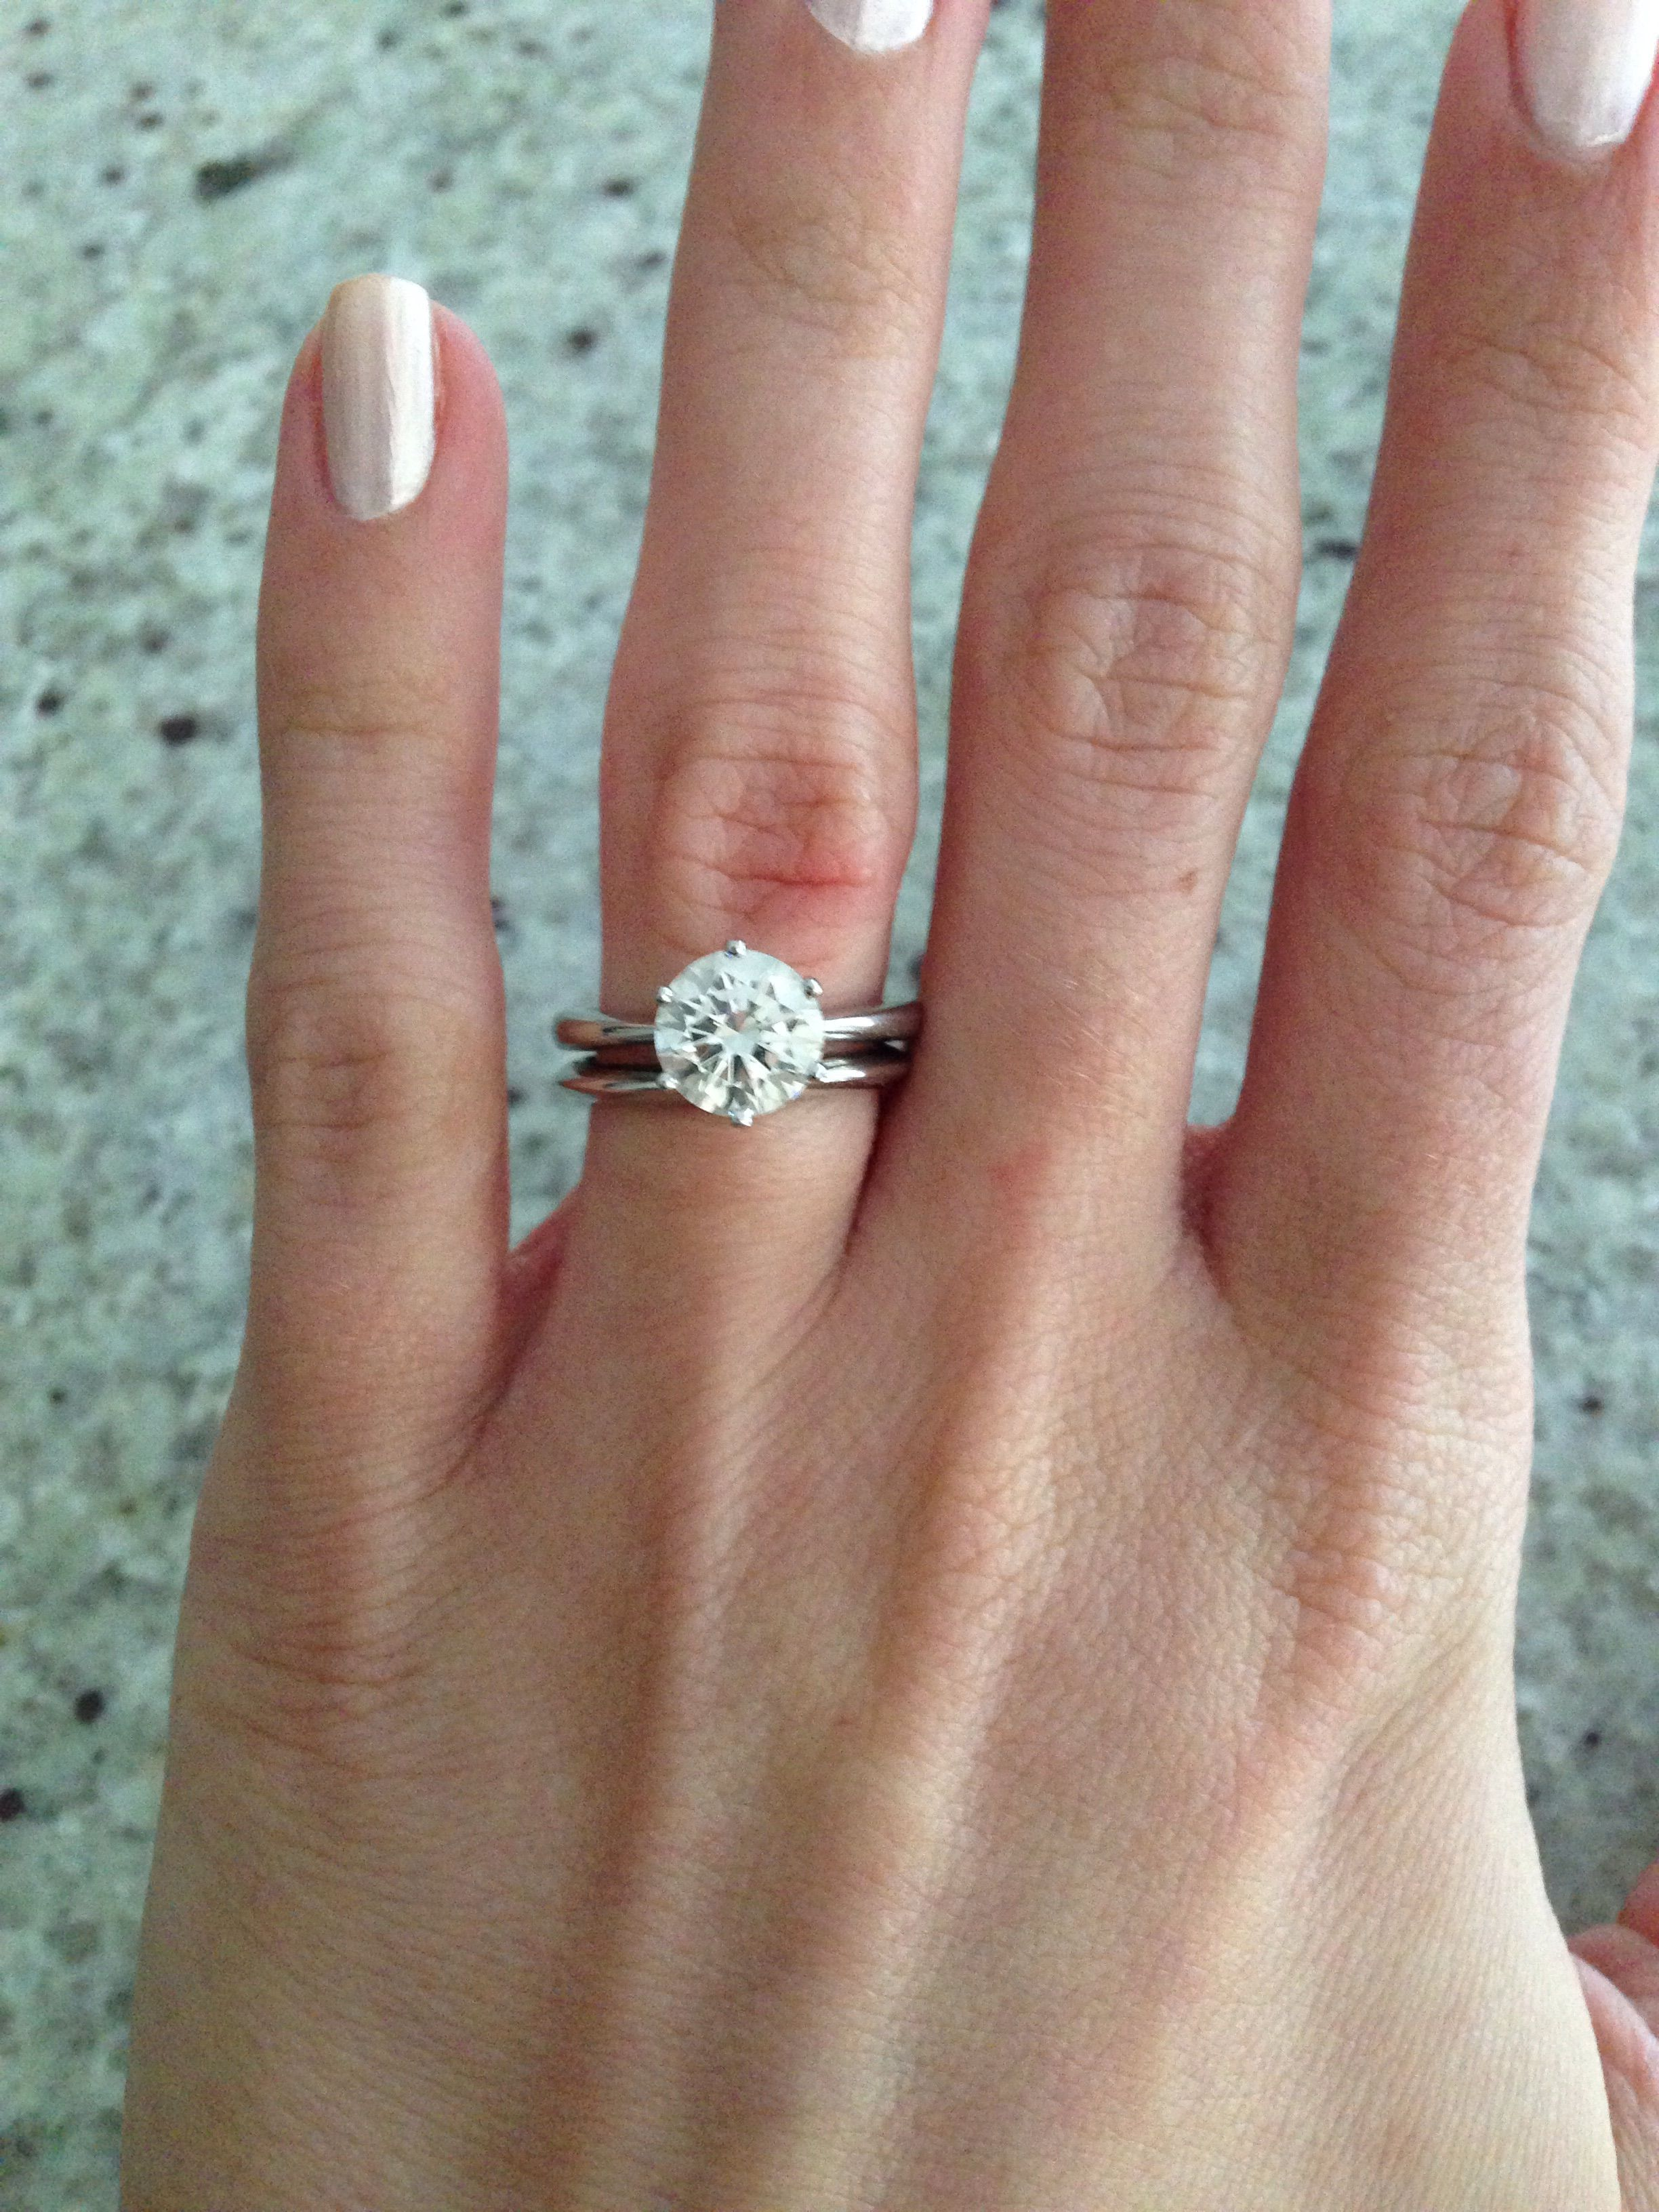 Plain Band Widths And Pictures Please Weddingbee Emerald Wedding Band Diamond Wedding Bands Engagement Ring On Hand